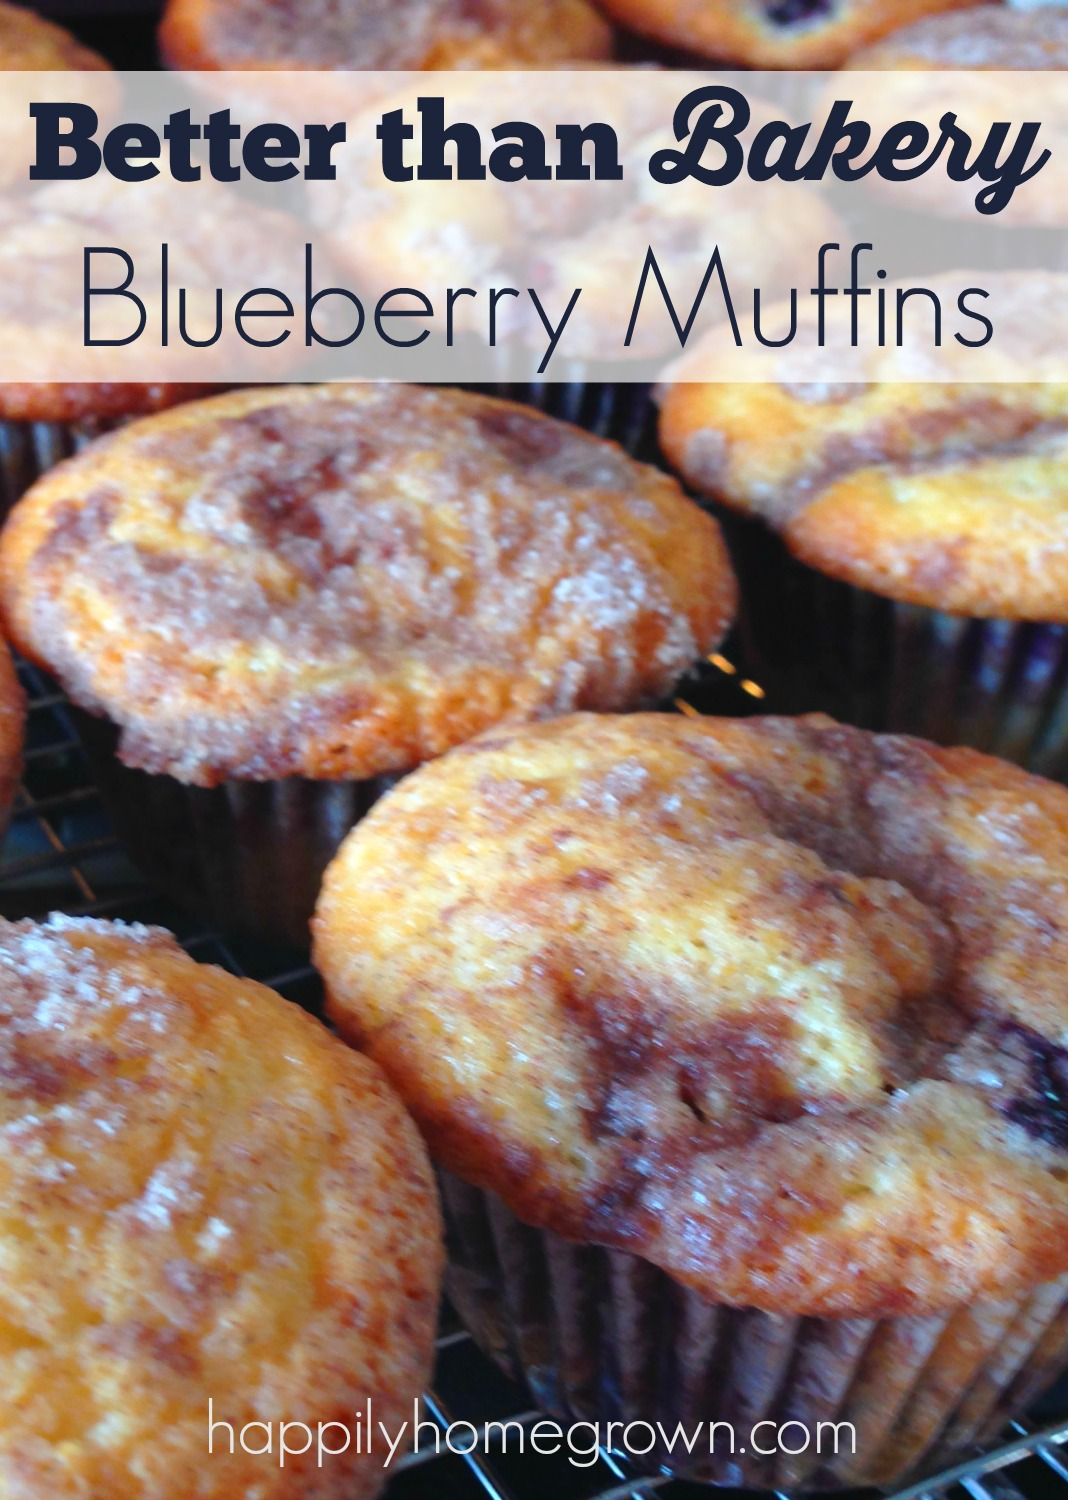 better than bakery blueberry muffins 2